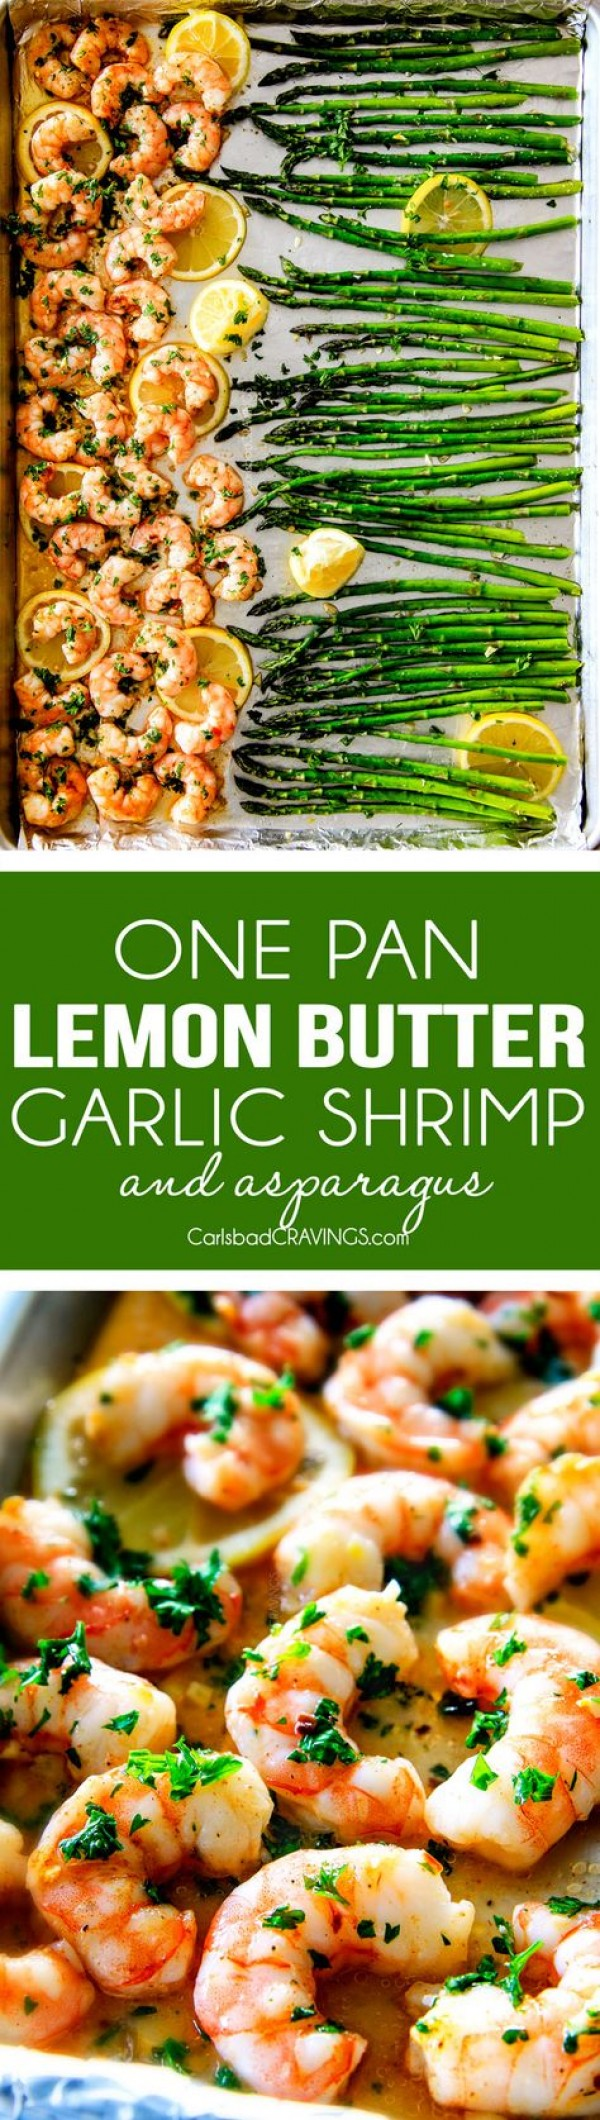 Get the recipe Lemon Butter Garlic Shrimp and Asparagus @recipes_to_go